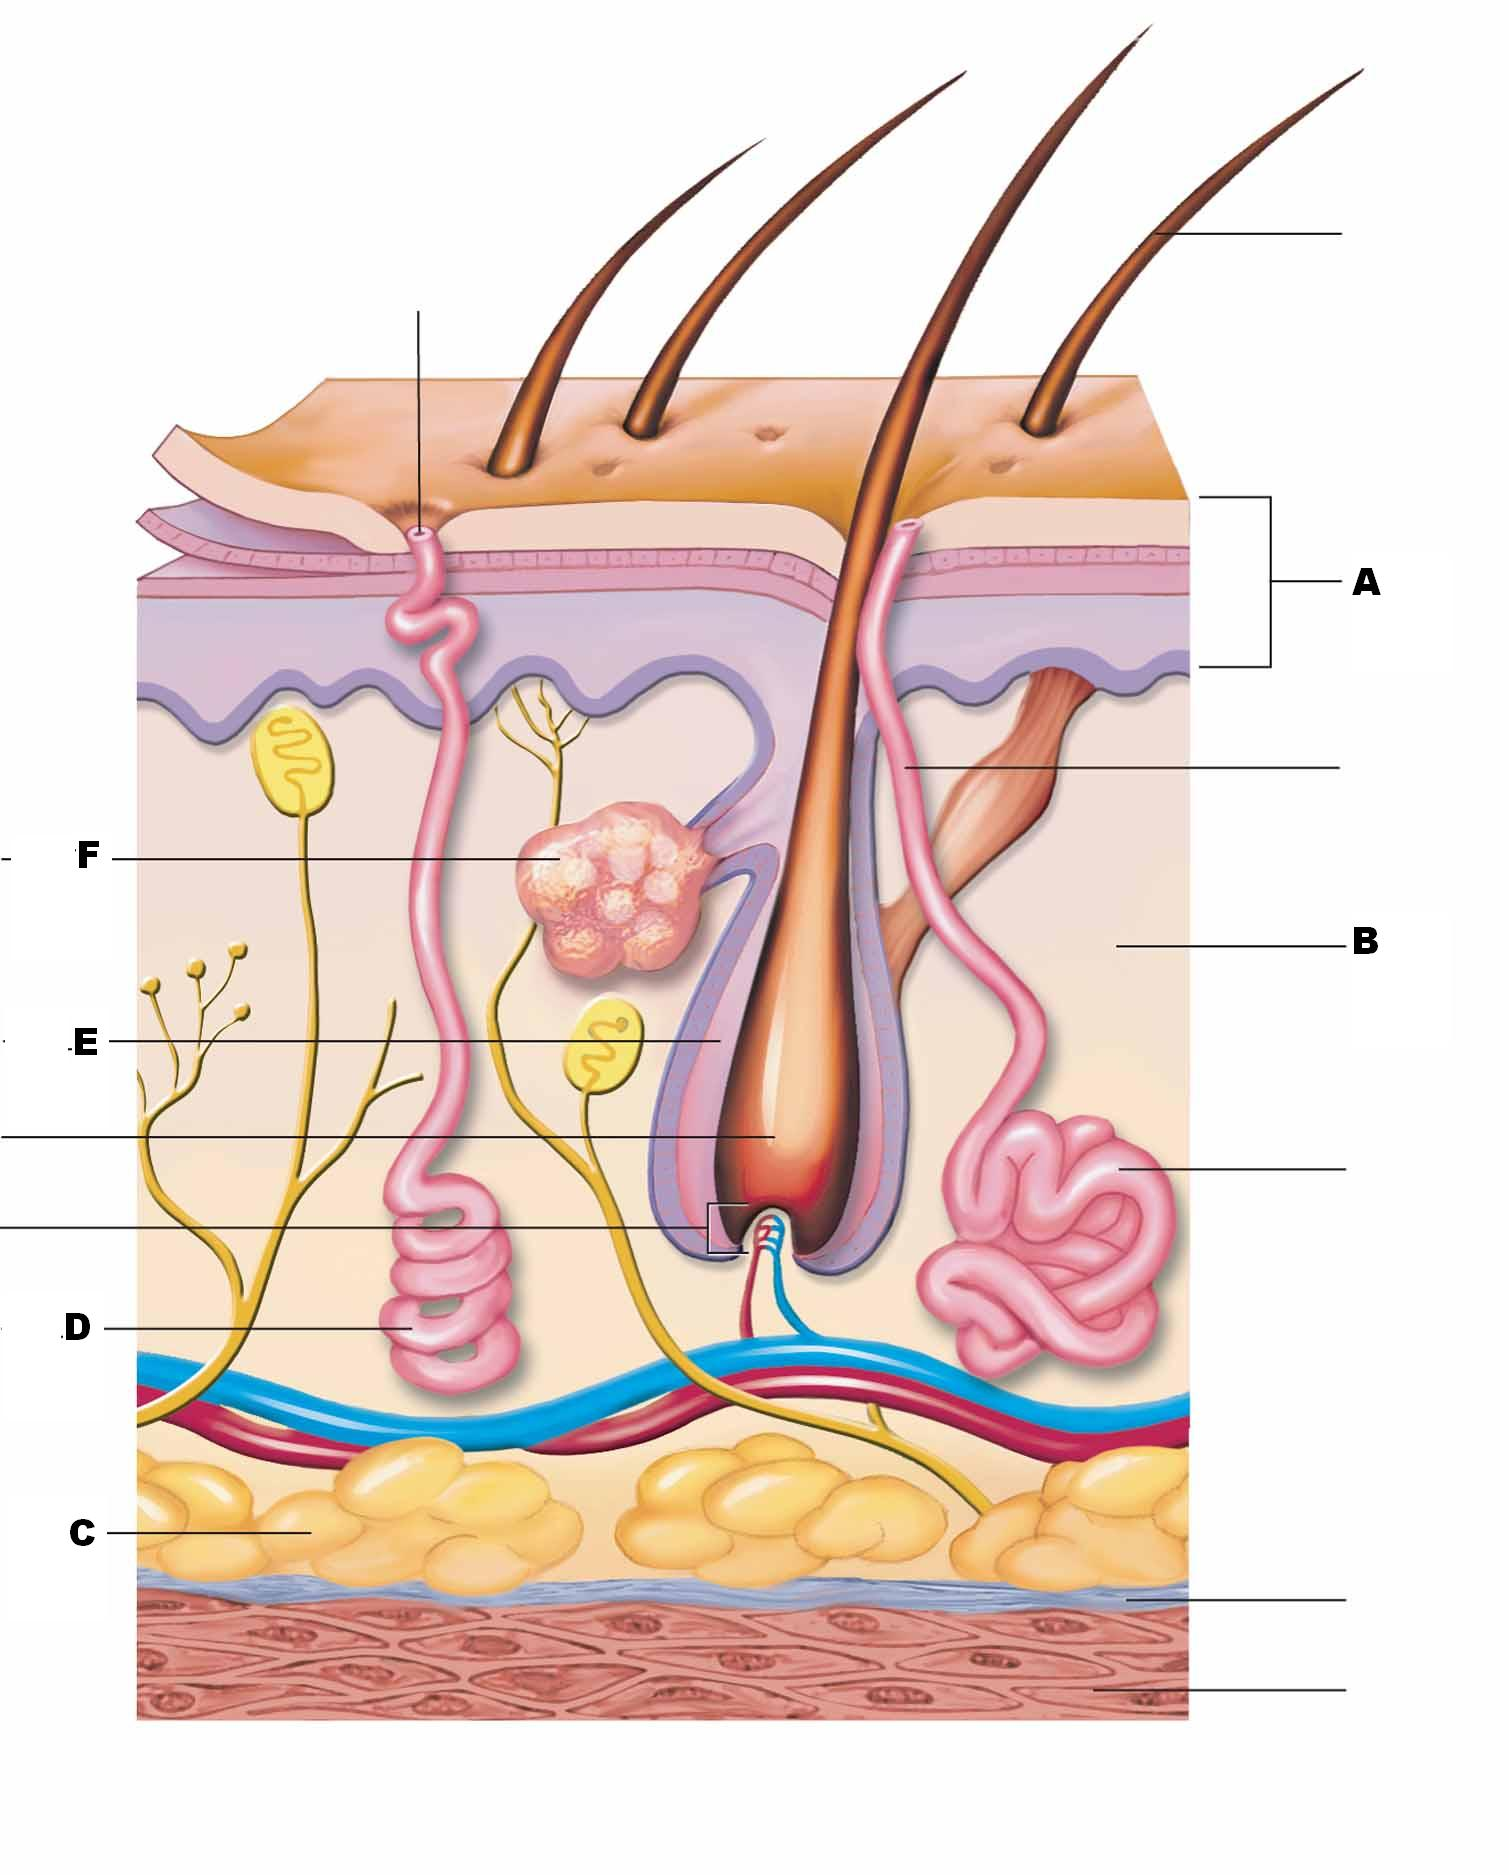 human skin diagram unlabeled kicker comp wiring the structure labeled in question 4 of